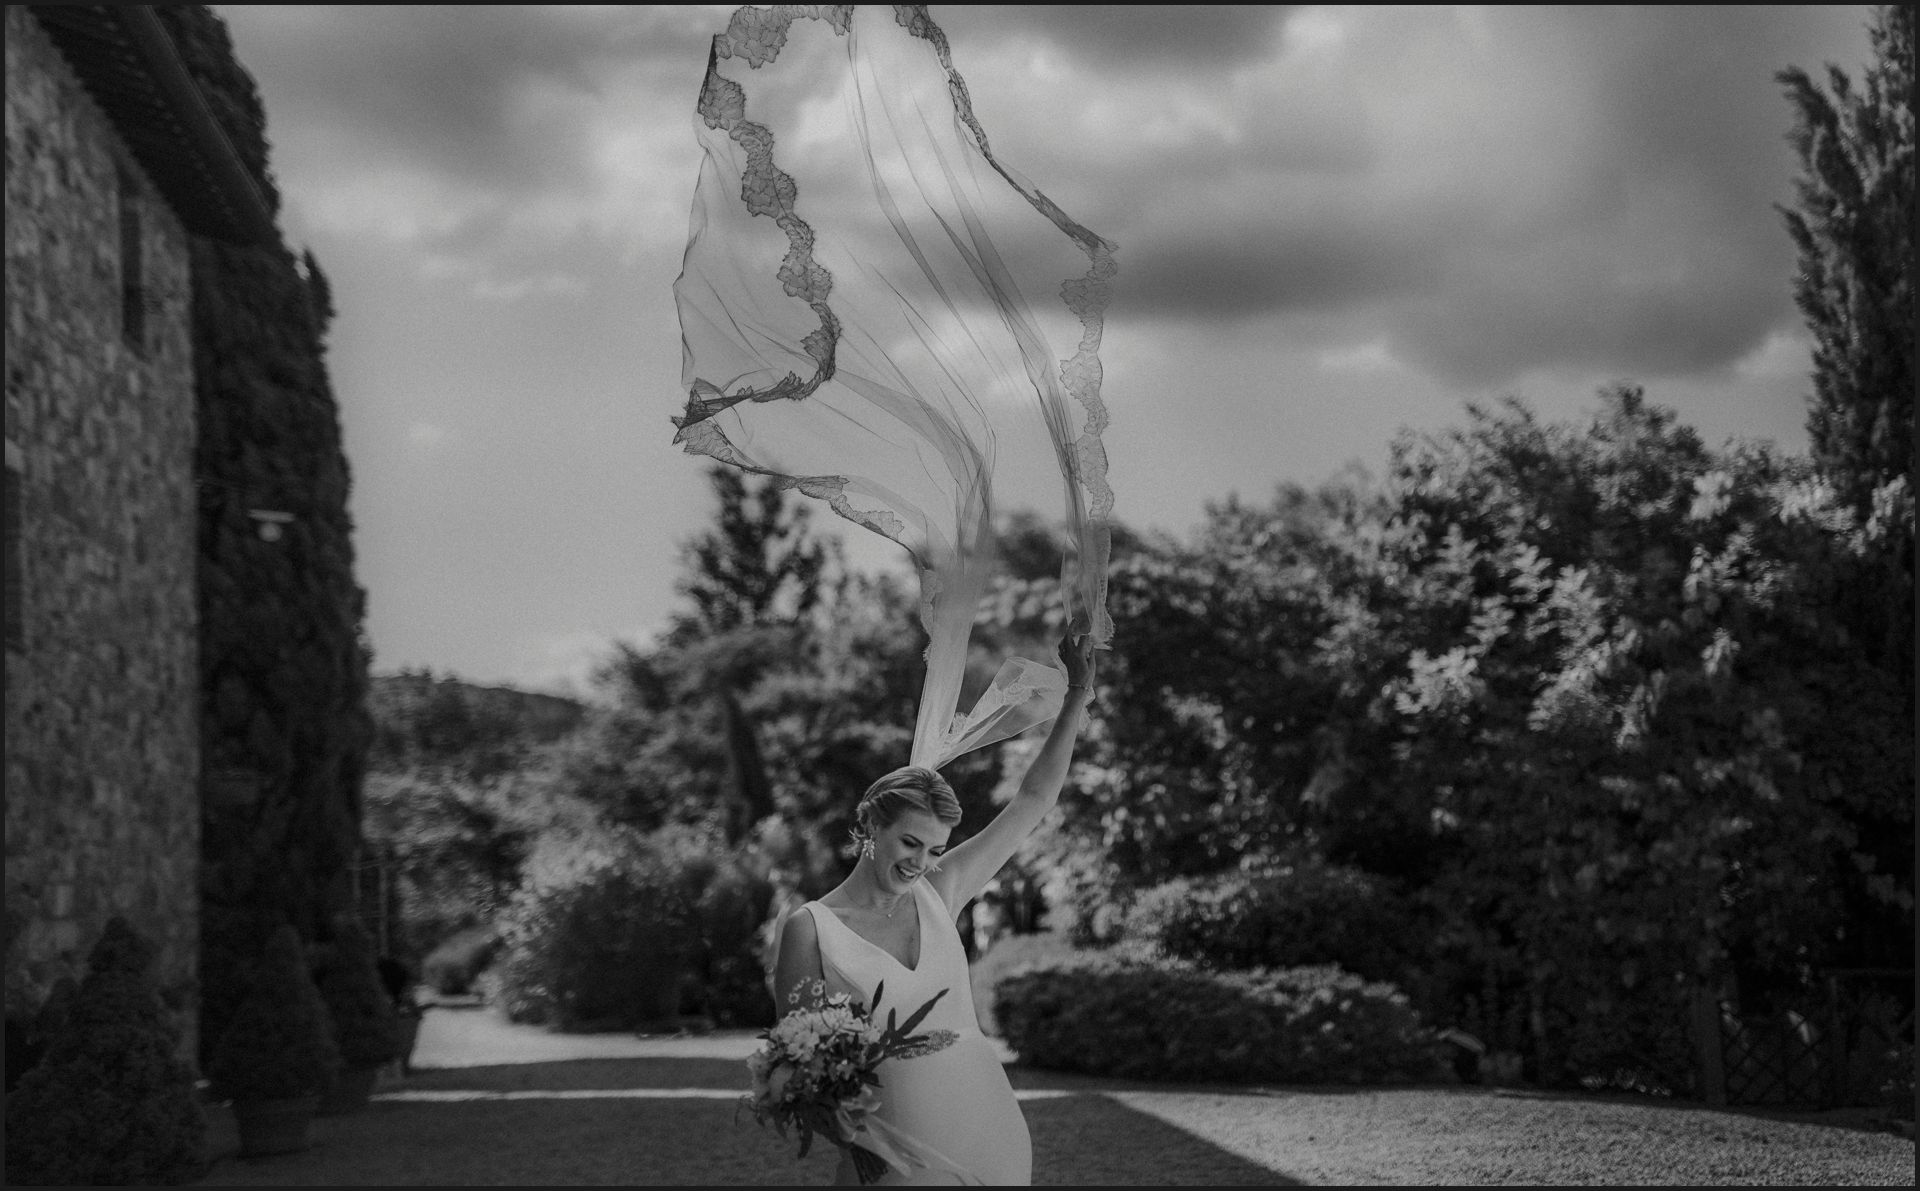 tenuta di canonica, umbria, wedding, ceremony, country, black and white, veil, wind